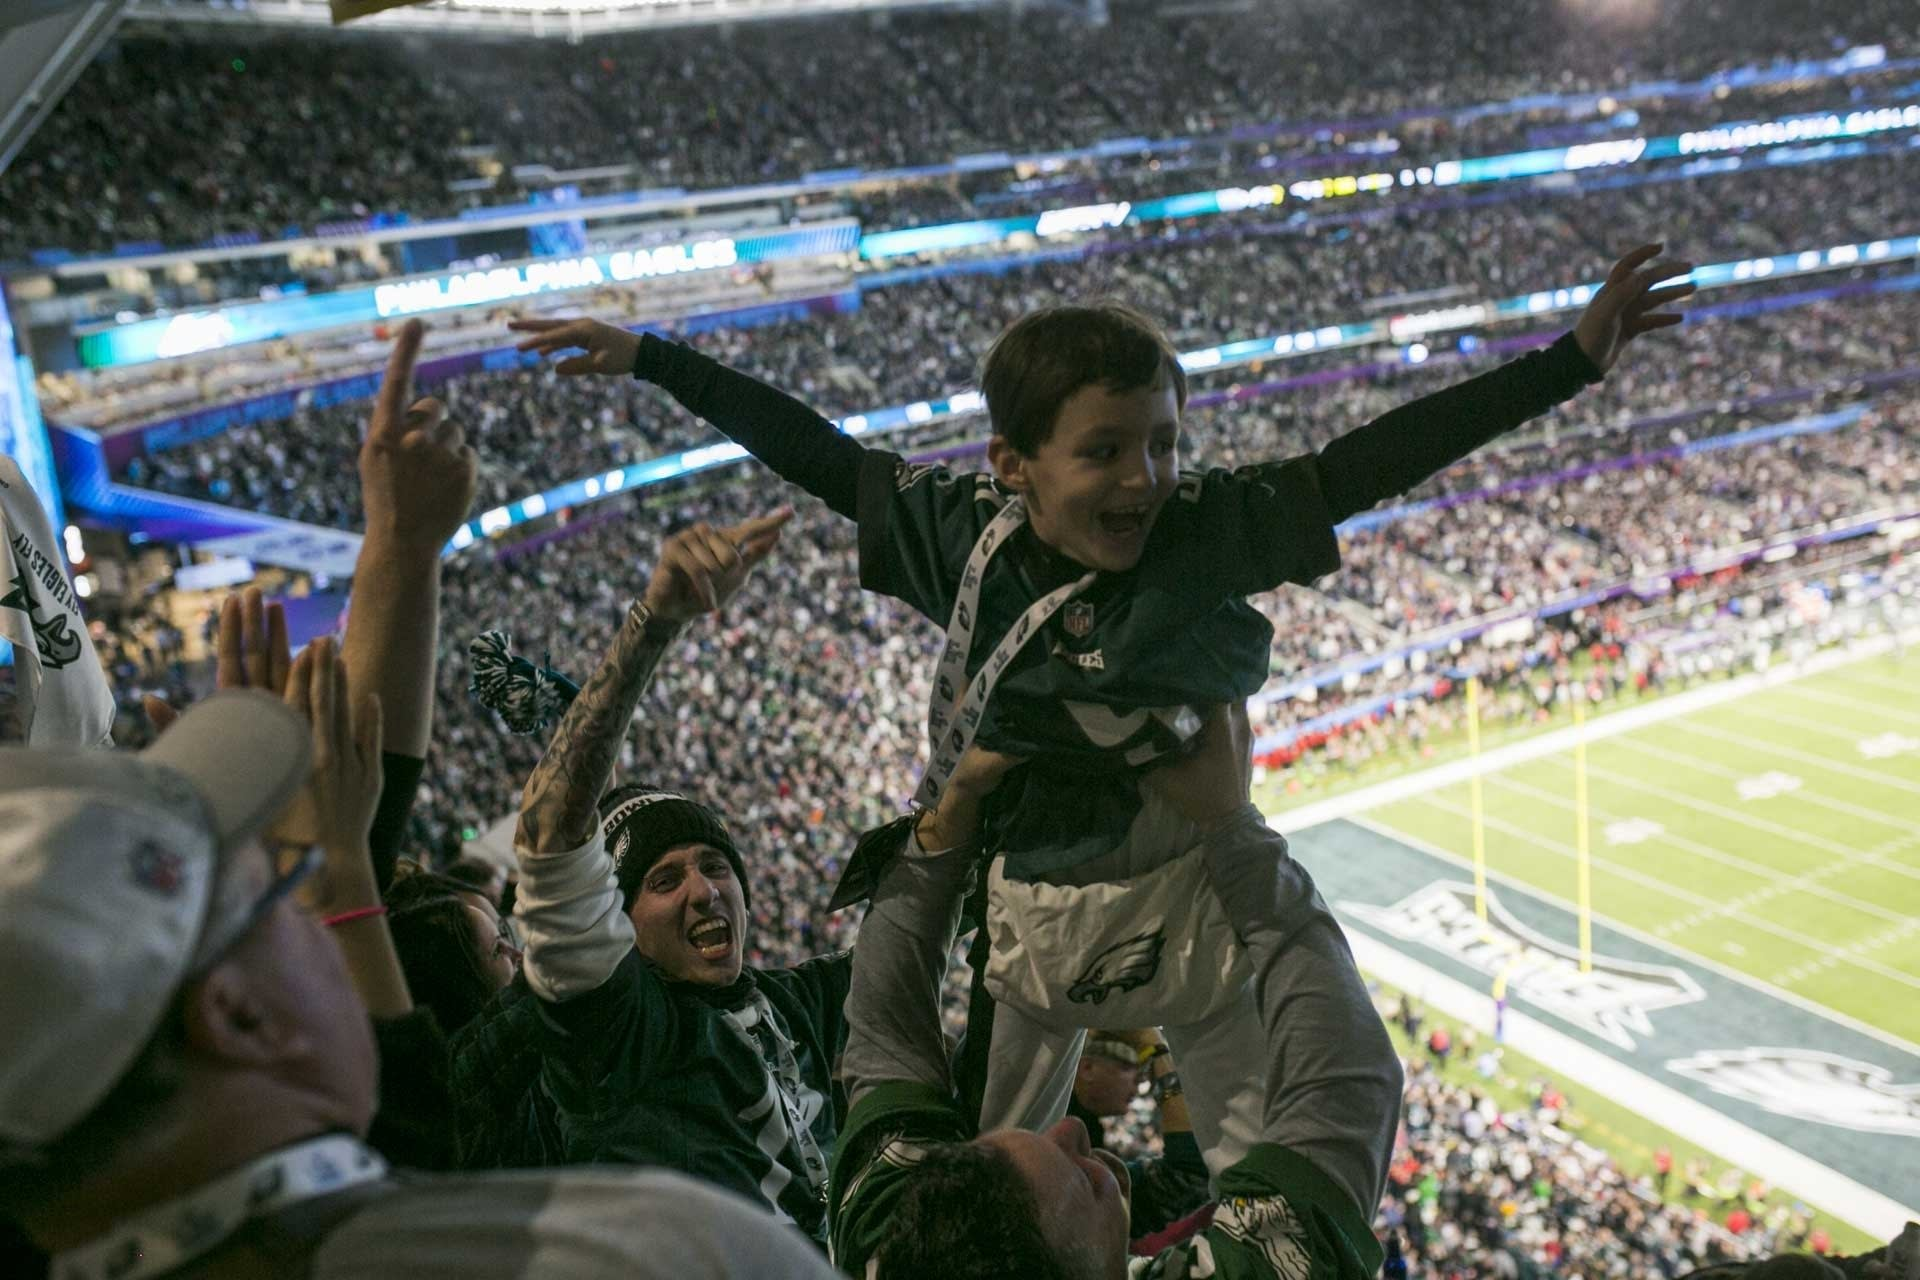 Philadelphia fans hoist a child into the air